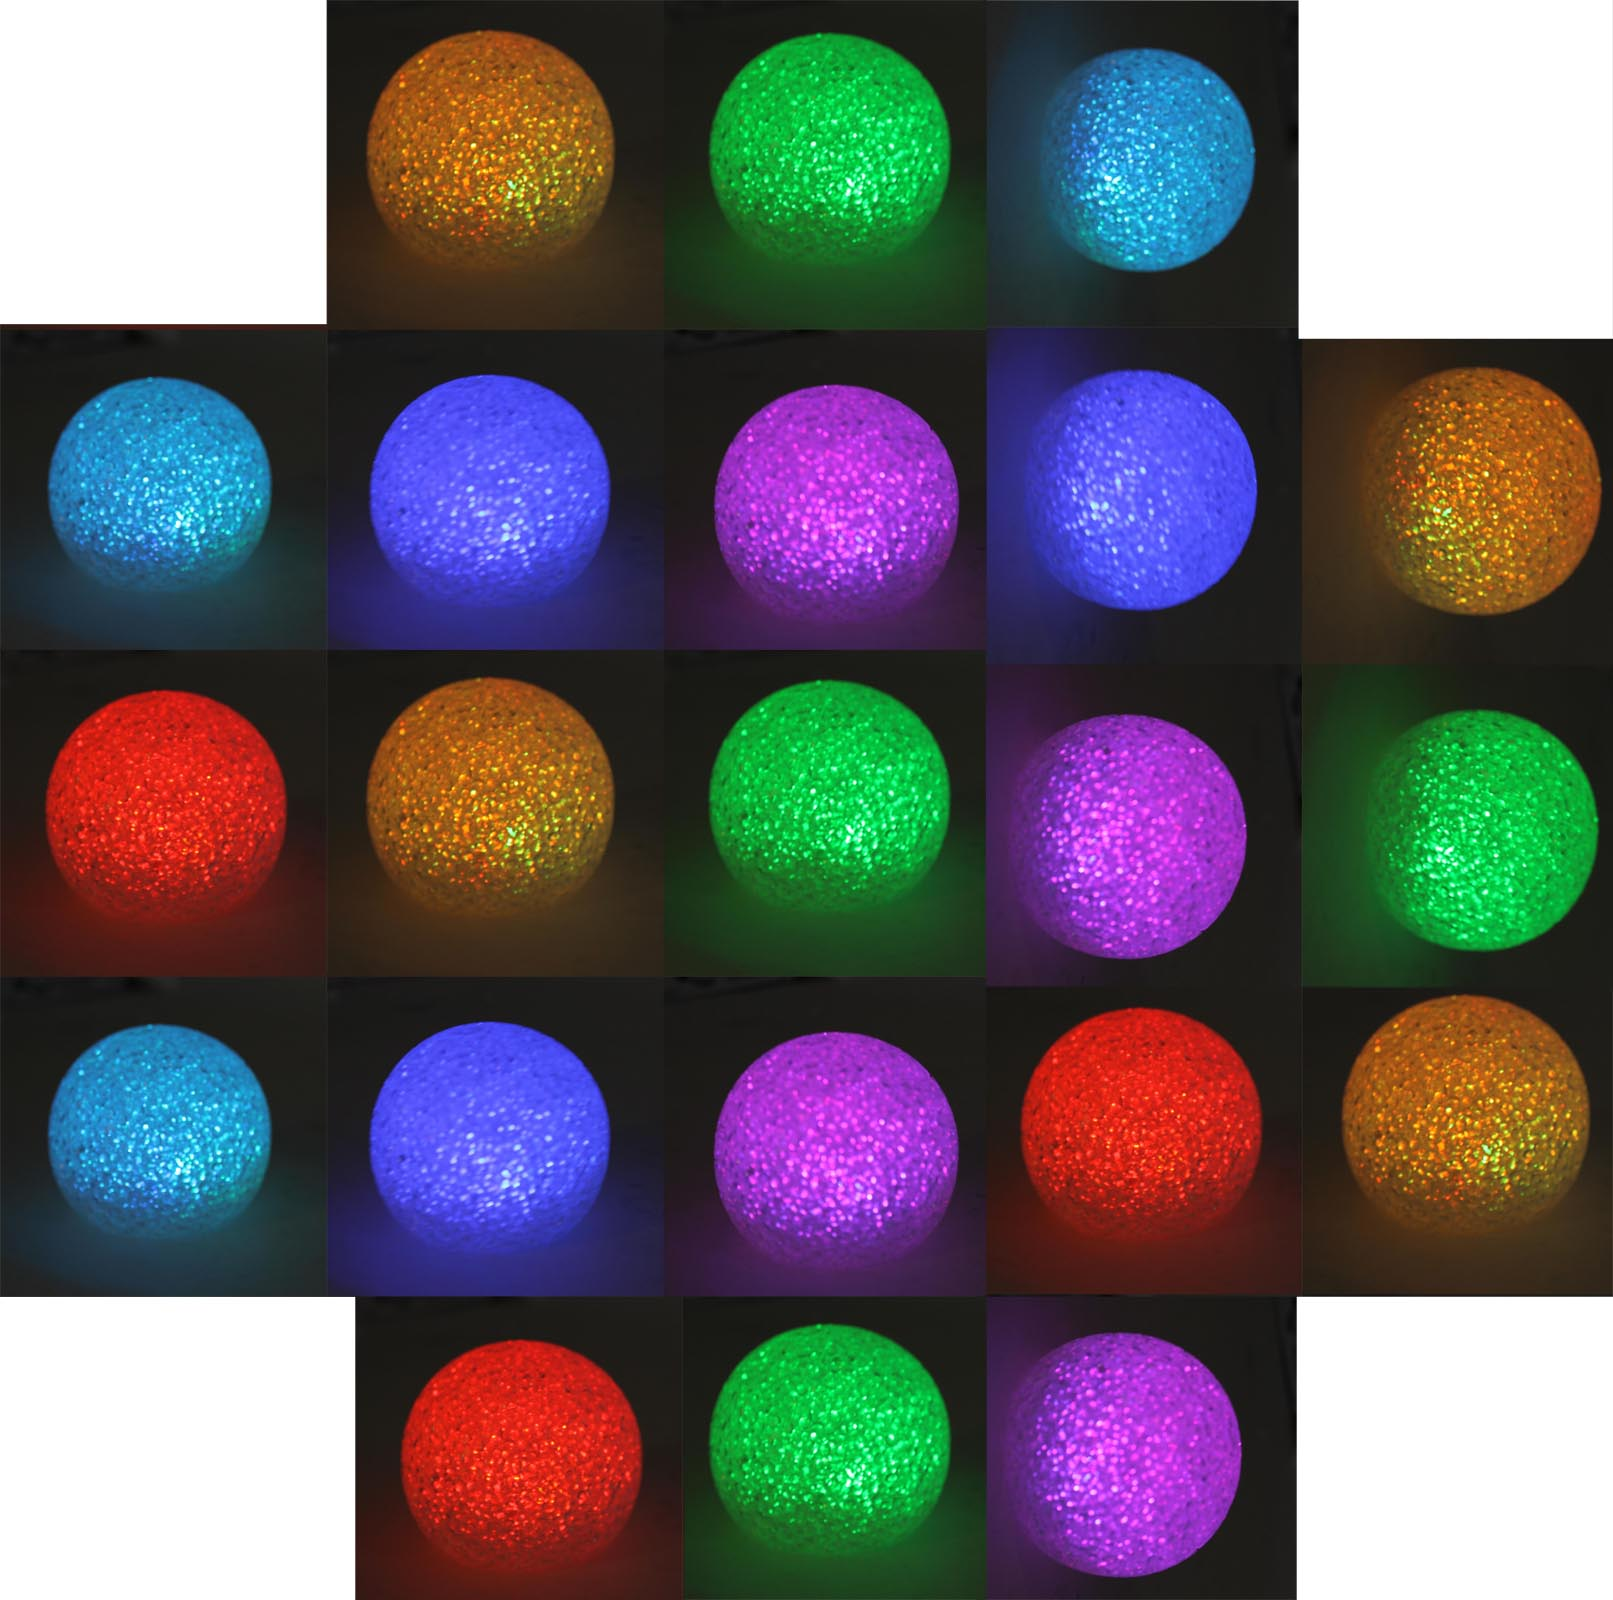 21 Pack of Good Times Color Changing LED Waterproof Floating Pool Globe Lights